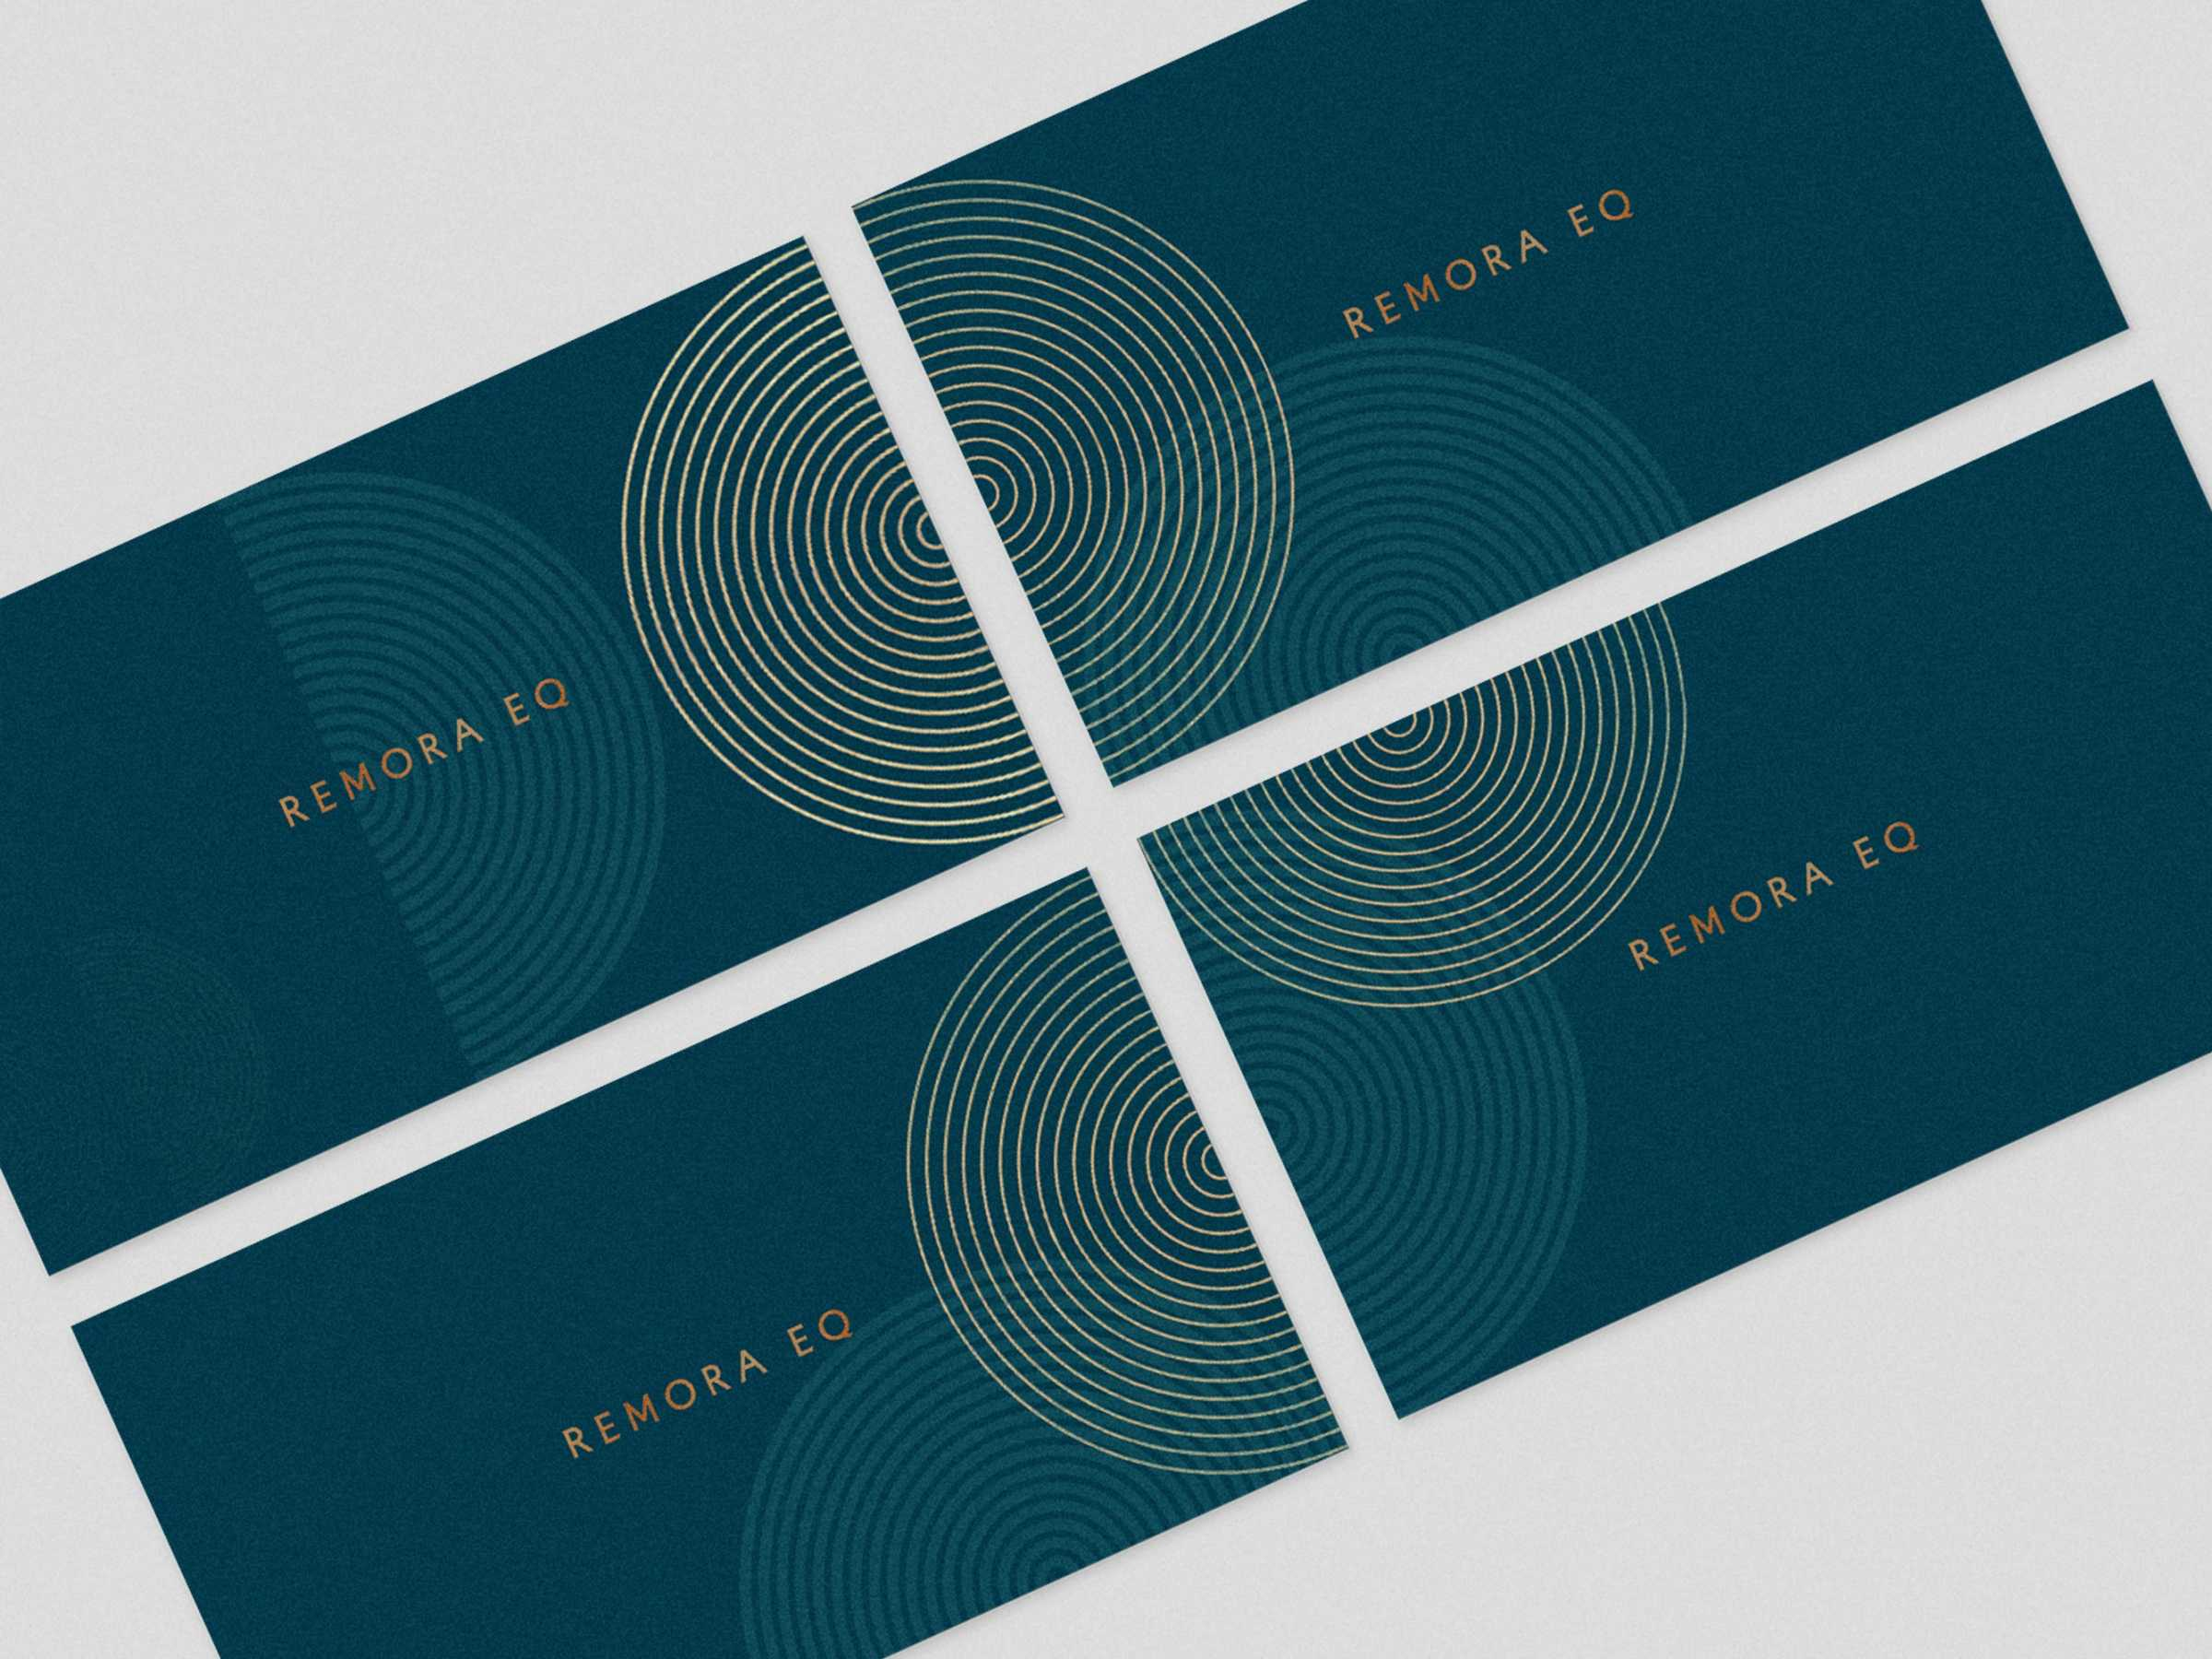 remora-business-cards